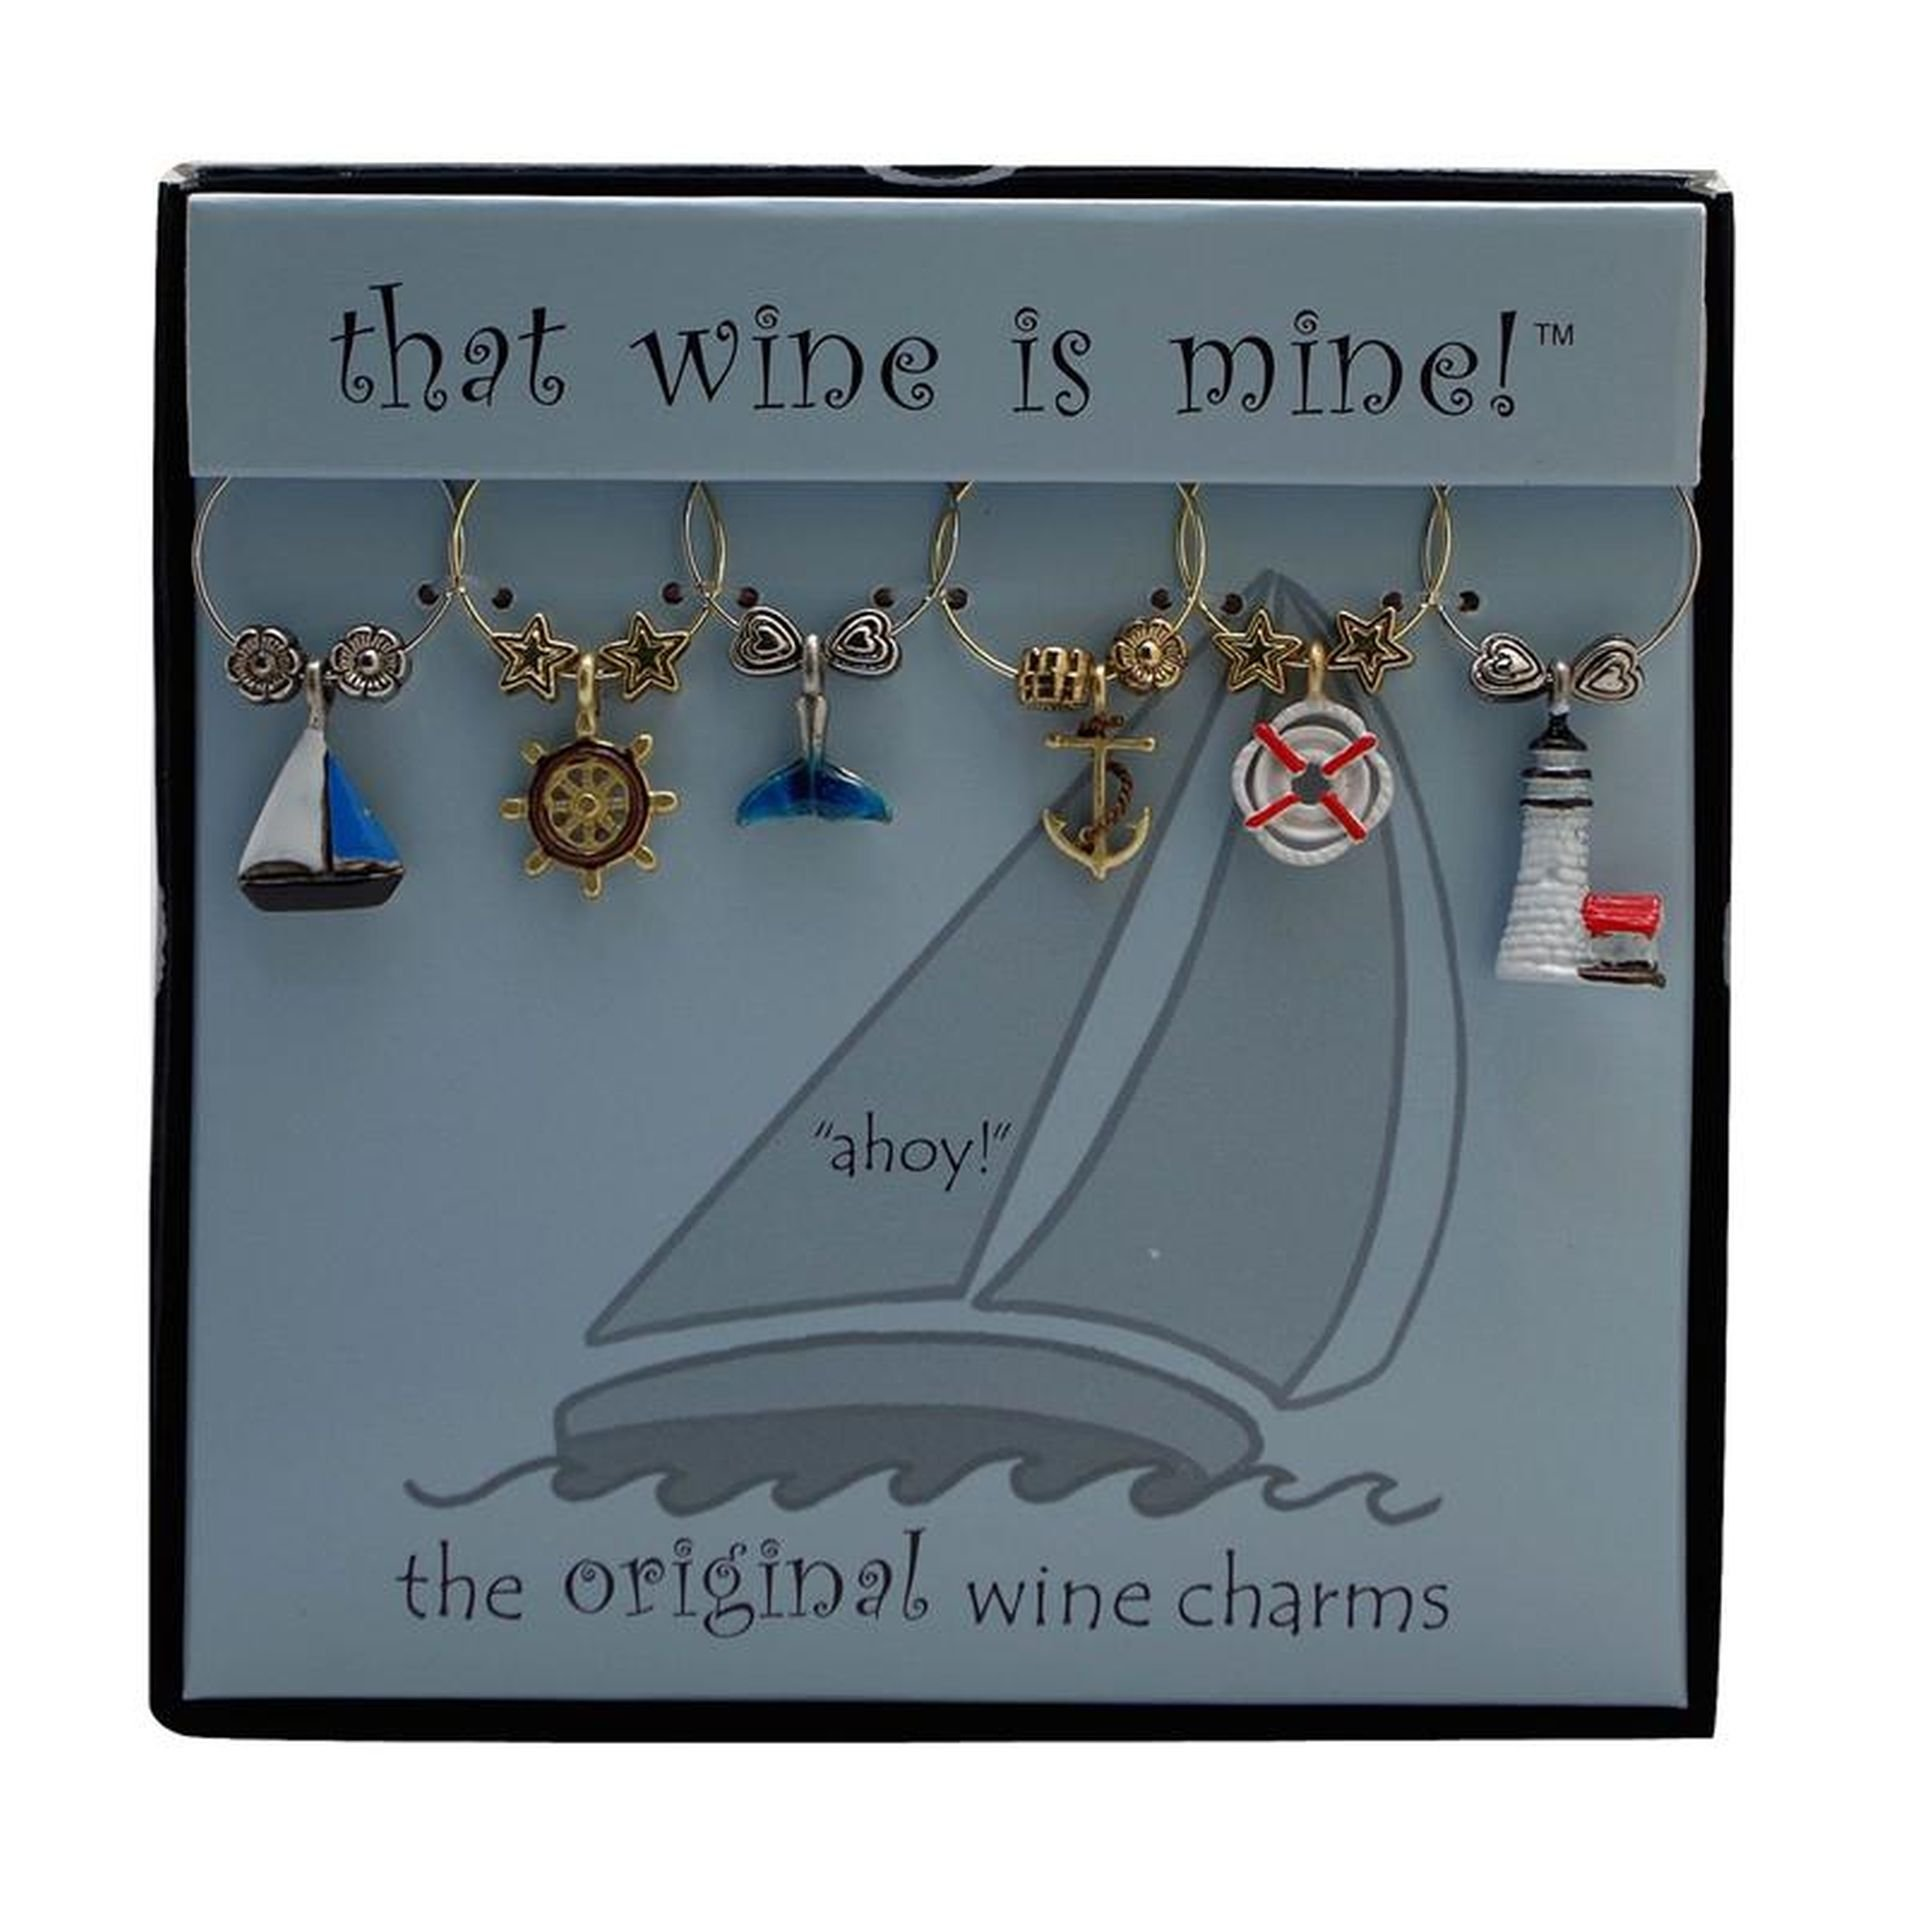 Wine Things WT-1406P Ahoy! Painted Wine Charms, Fits neatly around stem, Multi-Color